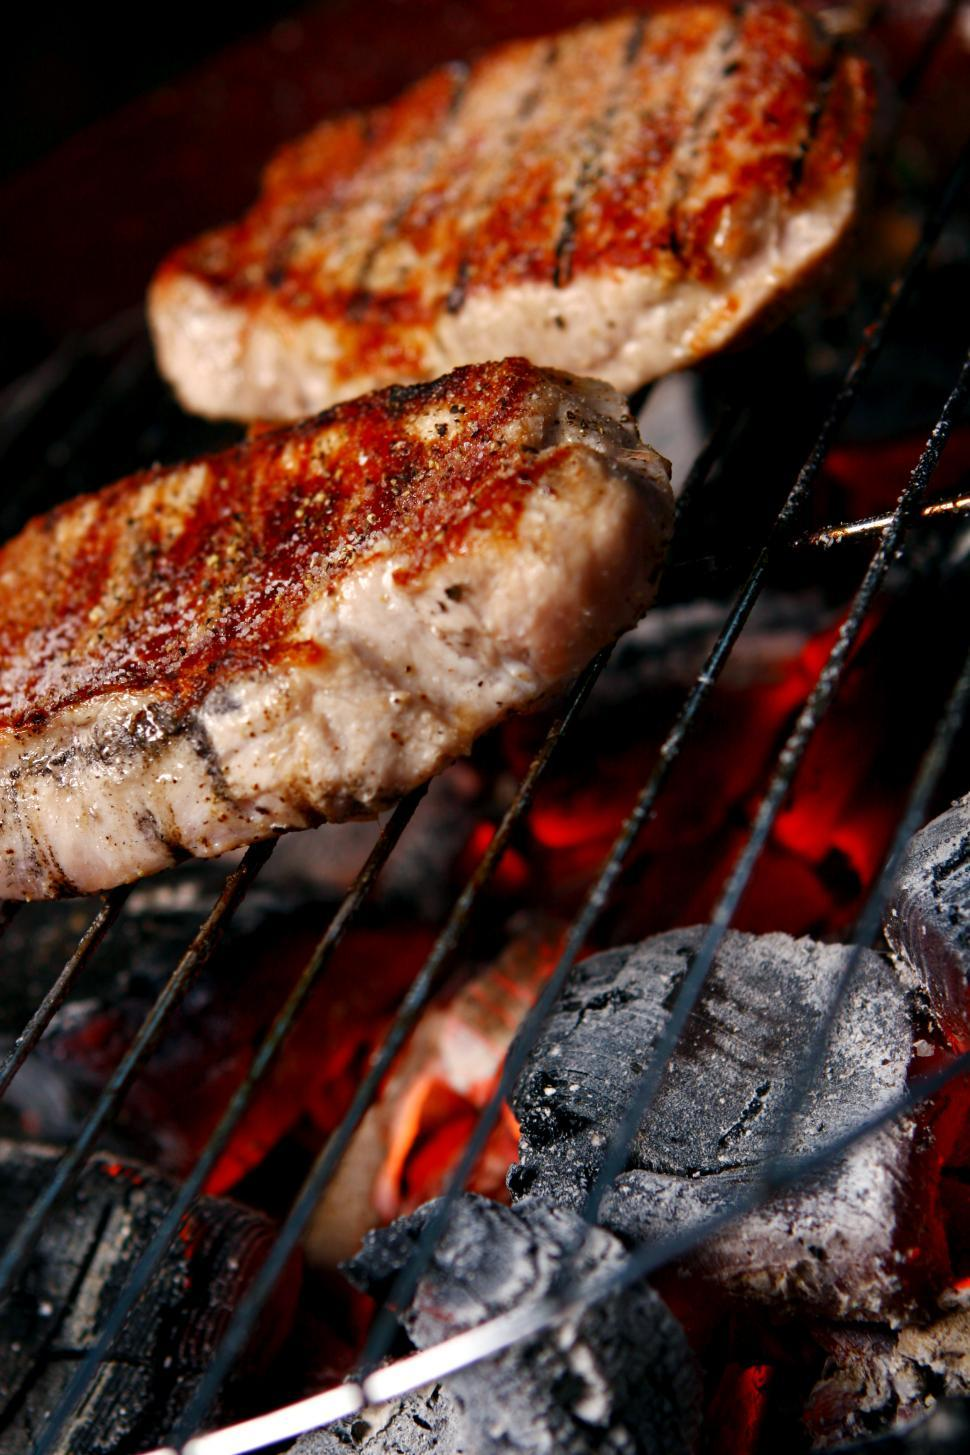 Download Free Stock Photo of a fresh grilled steak over hot coals